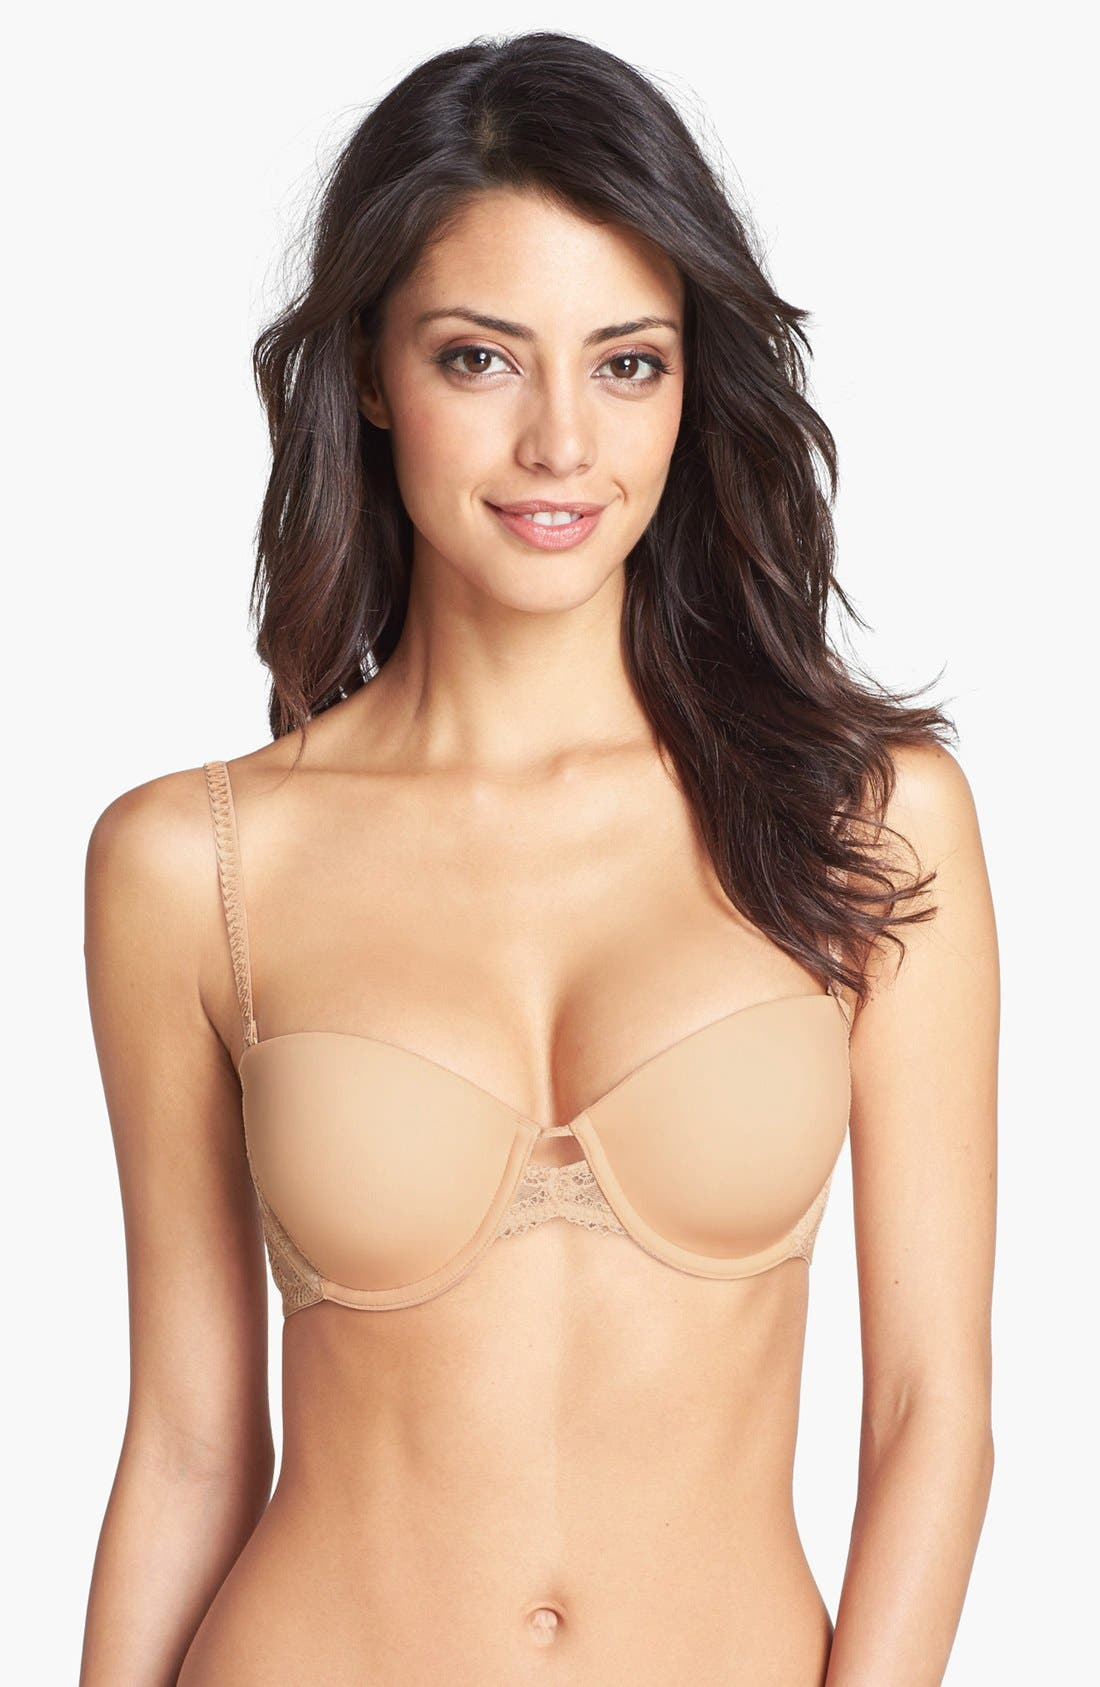 Alternate Image 1 Selected - DKNY 'Seductive Lights' Convertible Padded Underwire Bra